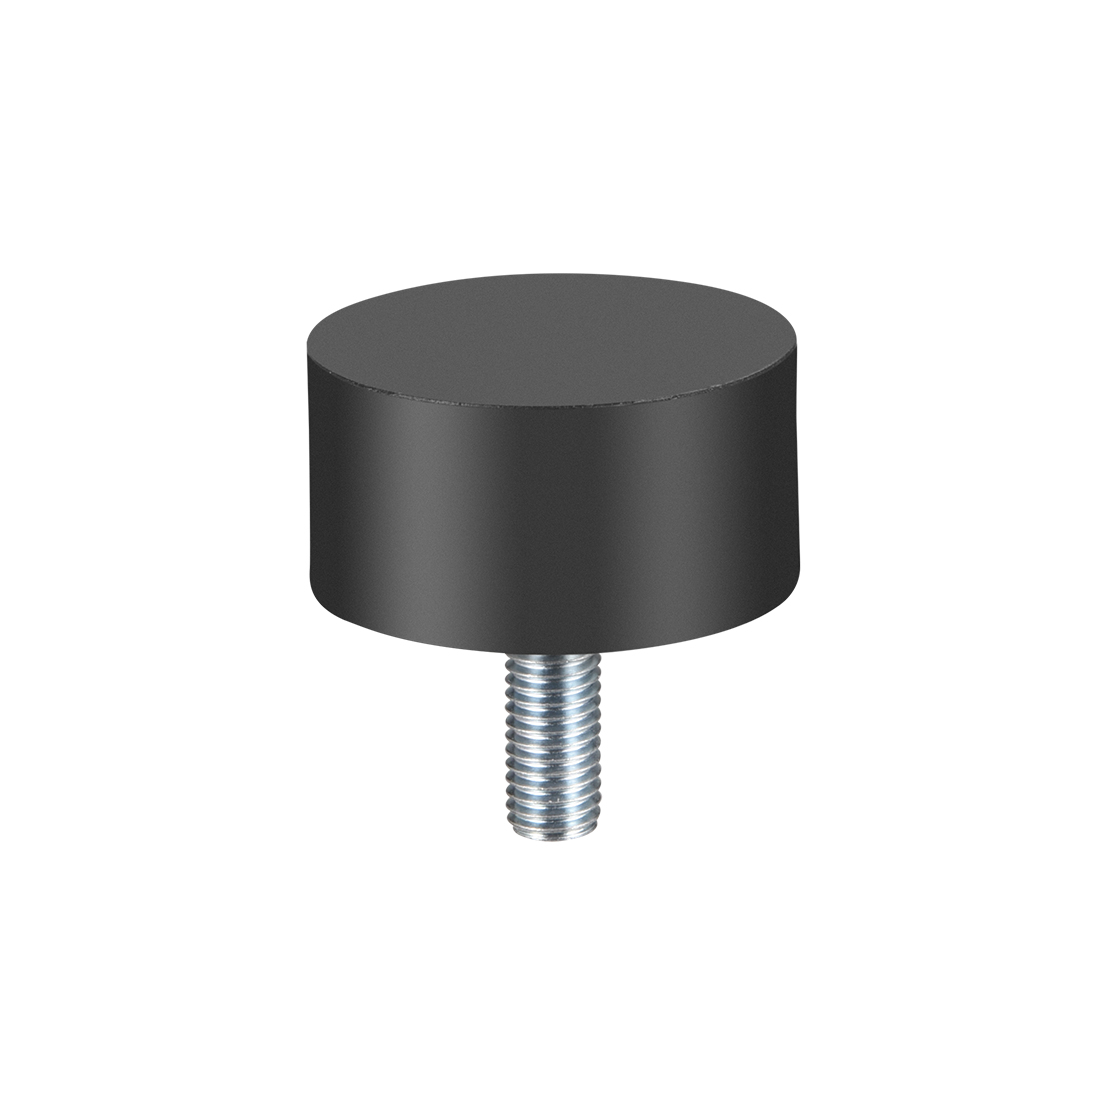 """M10 Rubber Vibration and Shock Absorption Mount w Thread Stud, 1.97"""" x0.98"""" - image 2 of 3"""